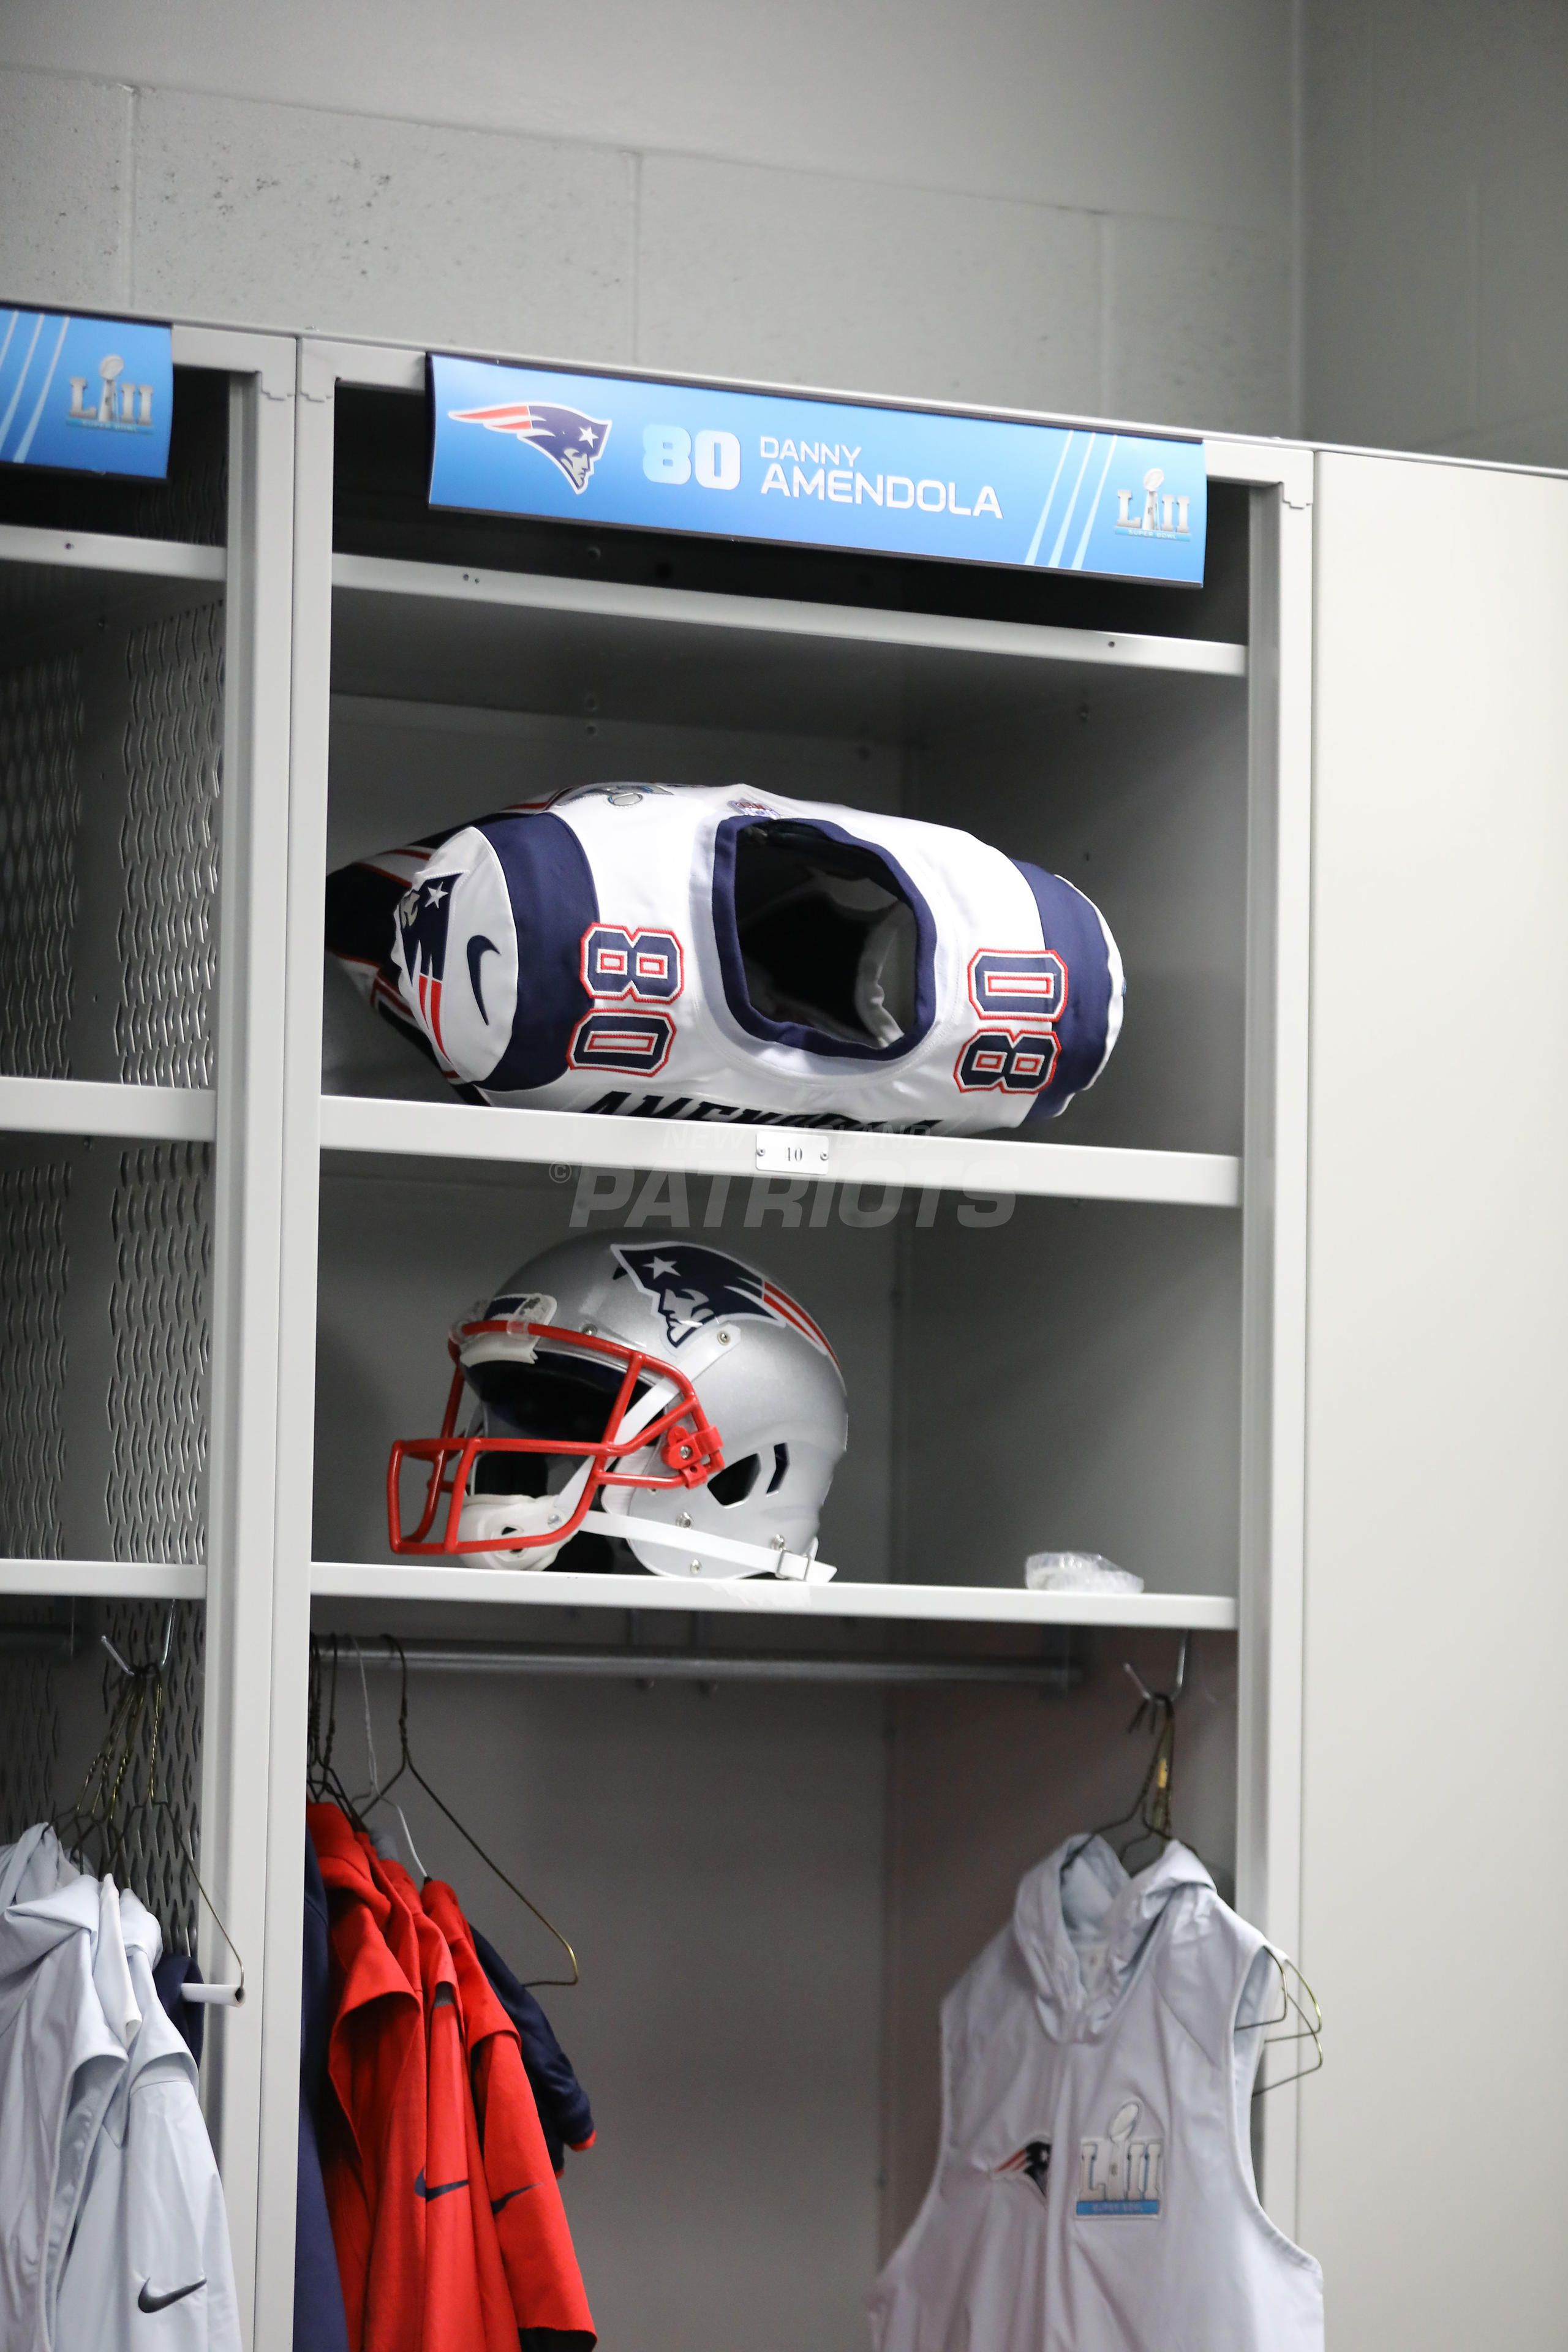 Super Bowl Lii Pregame Inside The Patriots Locker Room Locker Room Lockers Super Bowl